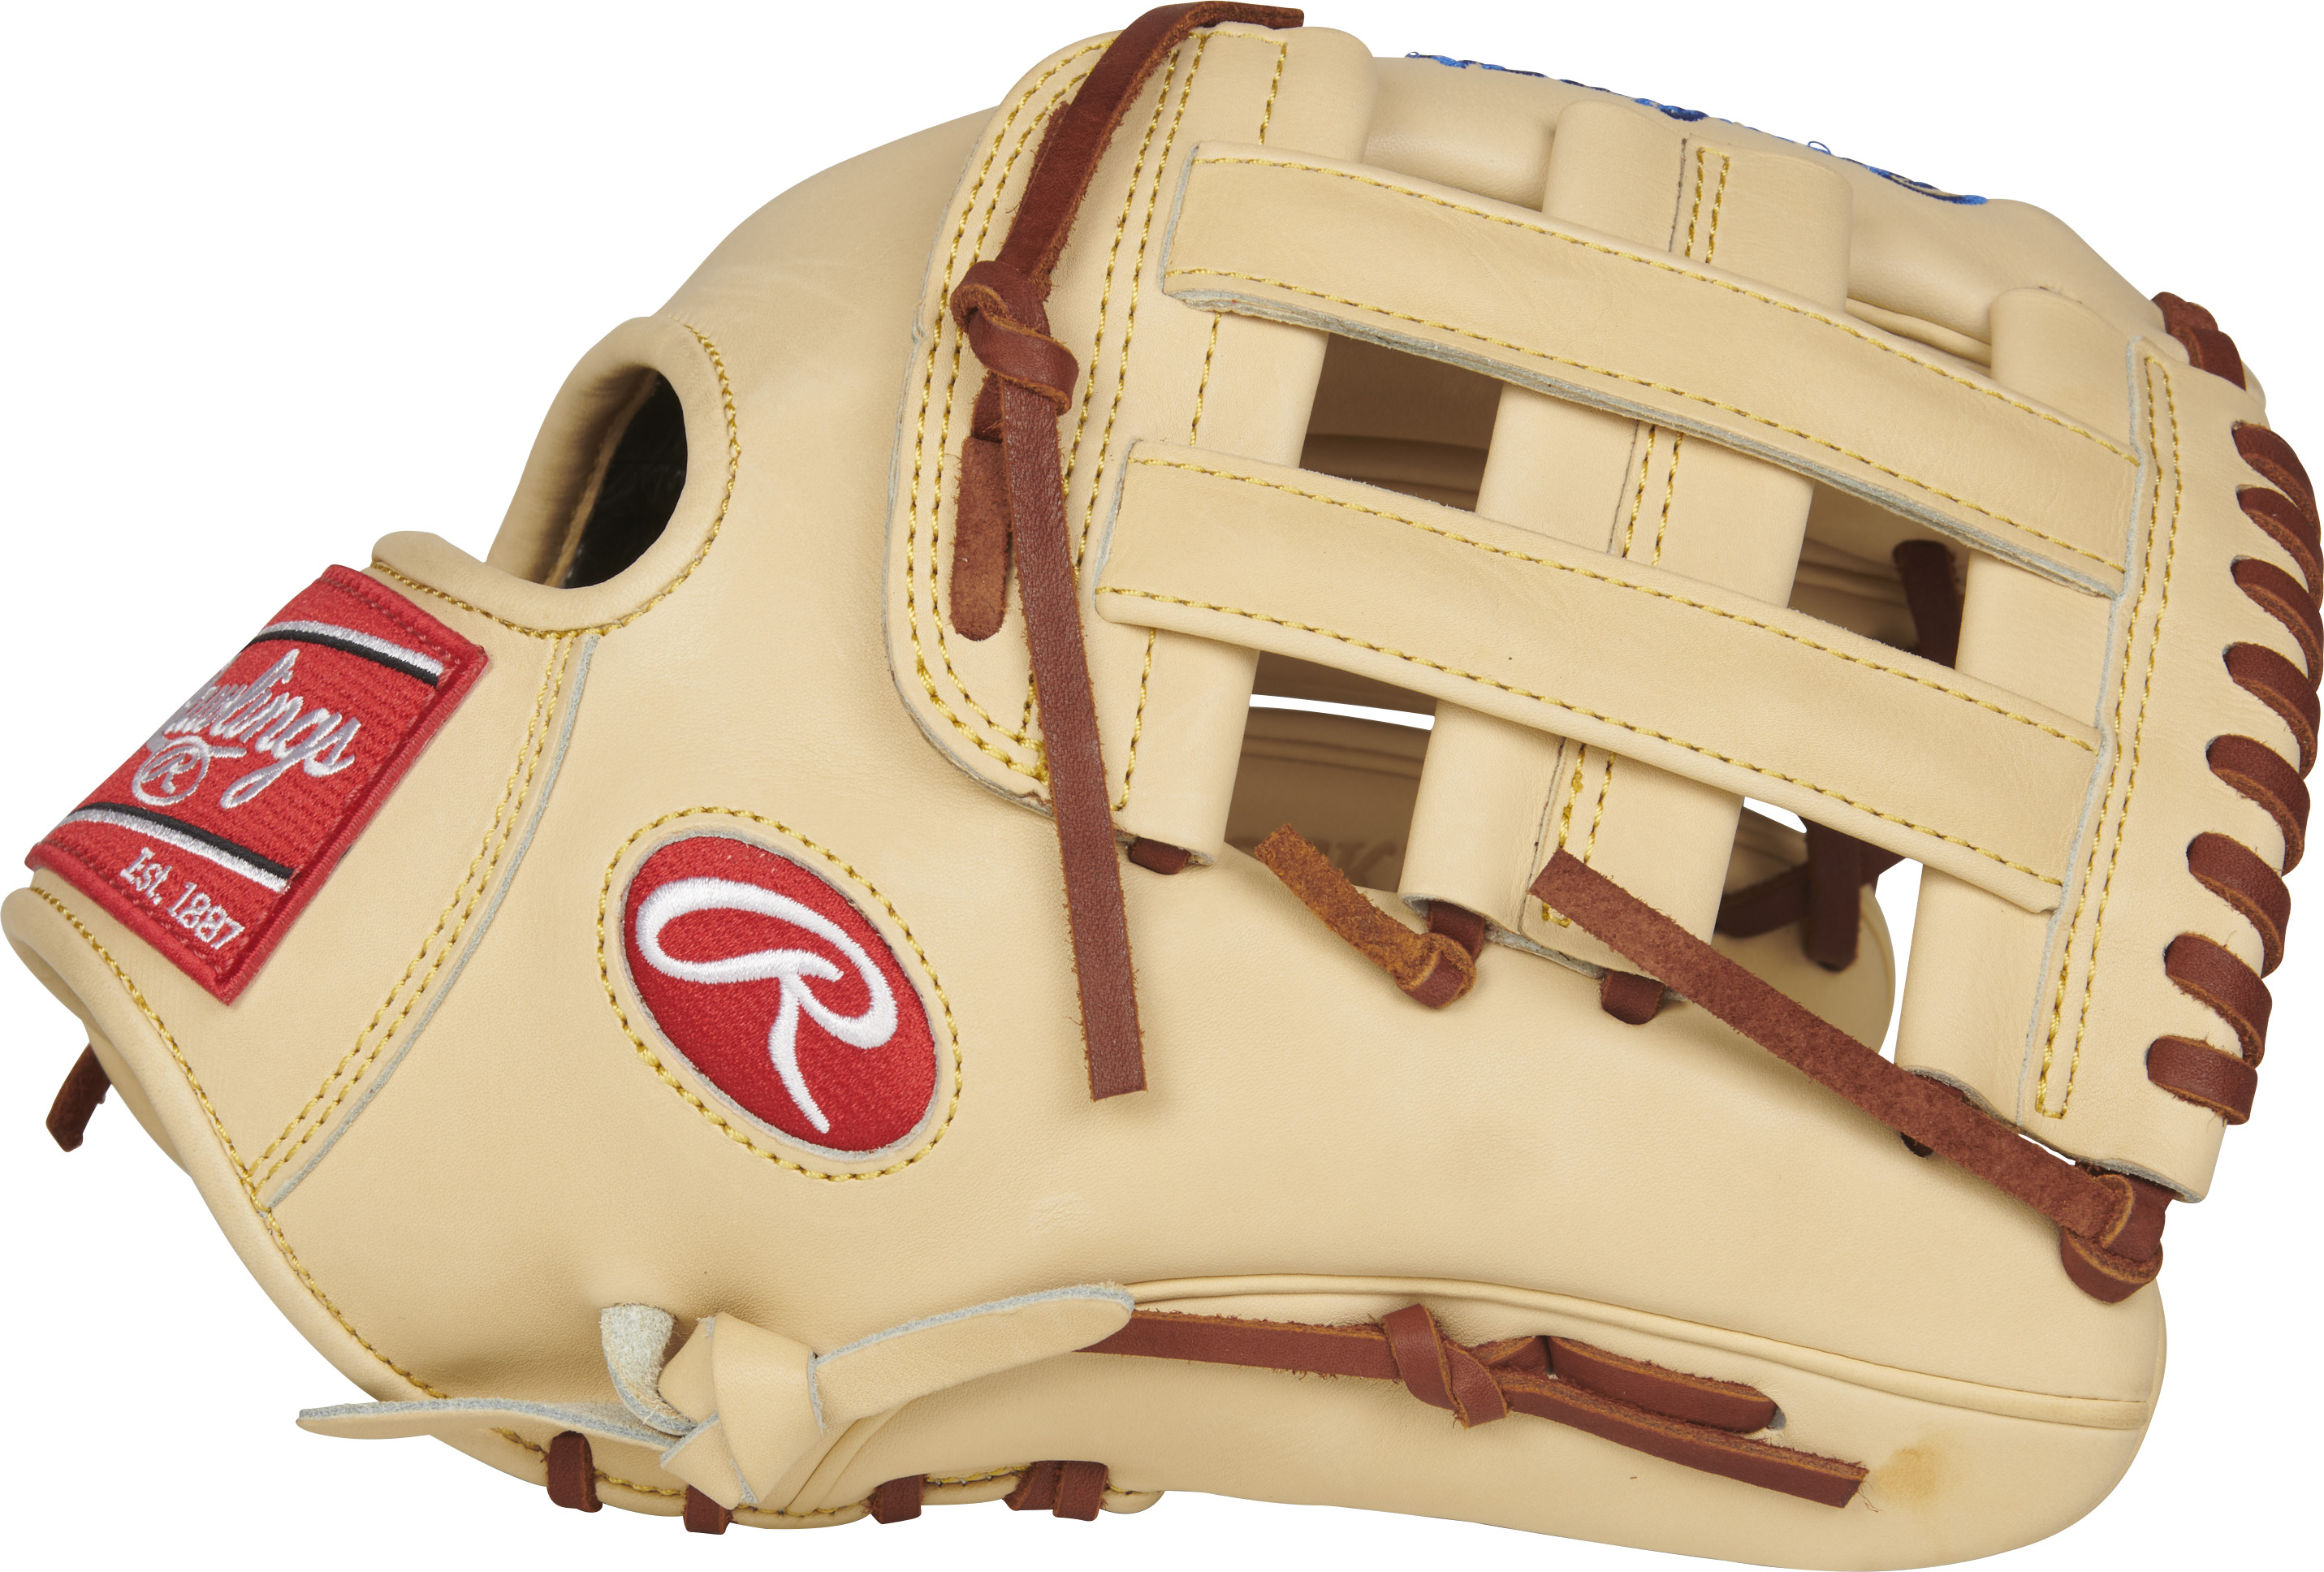 http://www.bestbatdeals.com/images/gloves/rawlings/PROSKB17-3.jpg